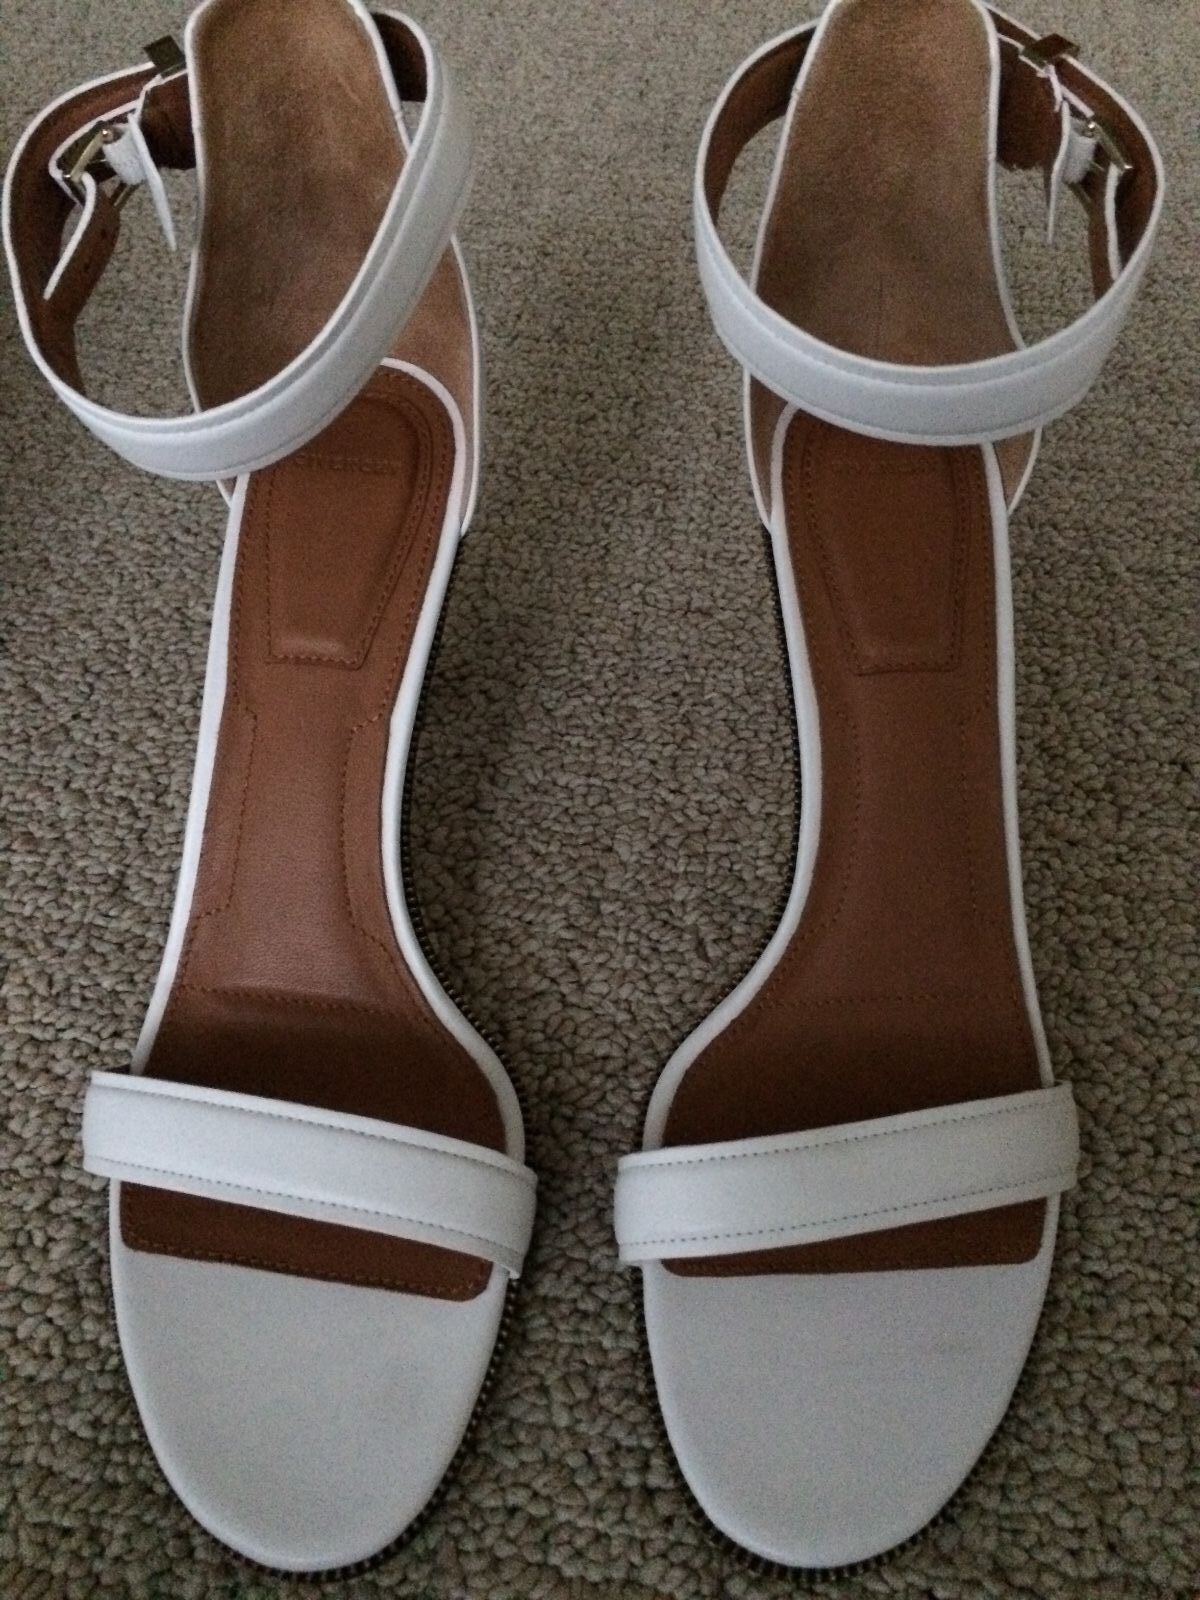 GIVENCHY Women's Retra White Leather Sandal Size IT40.5 US 10.5 NEW